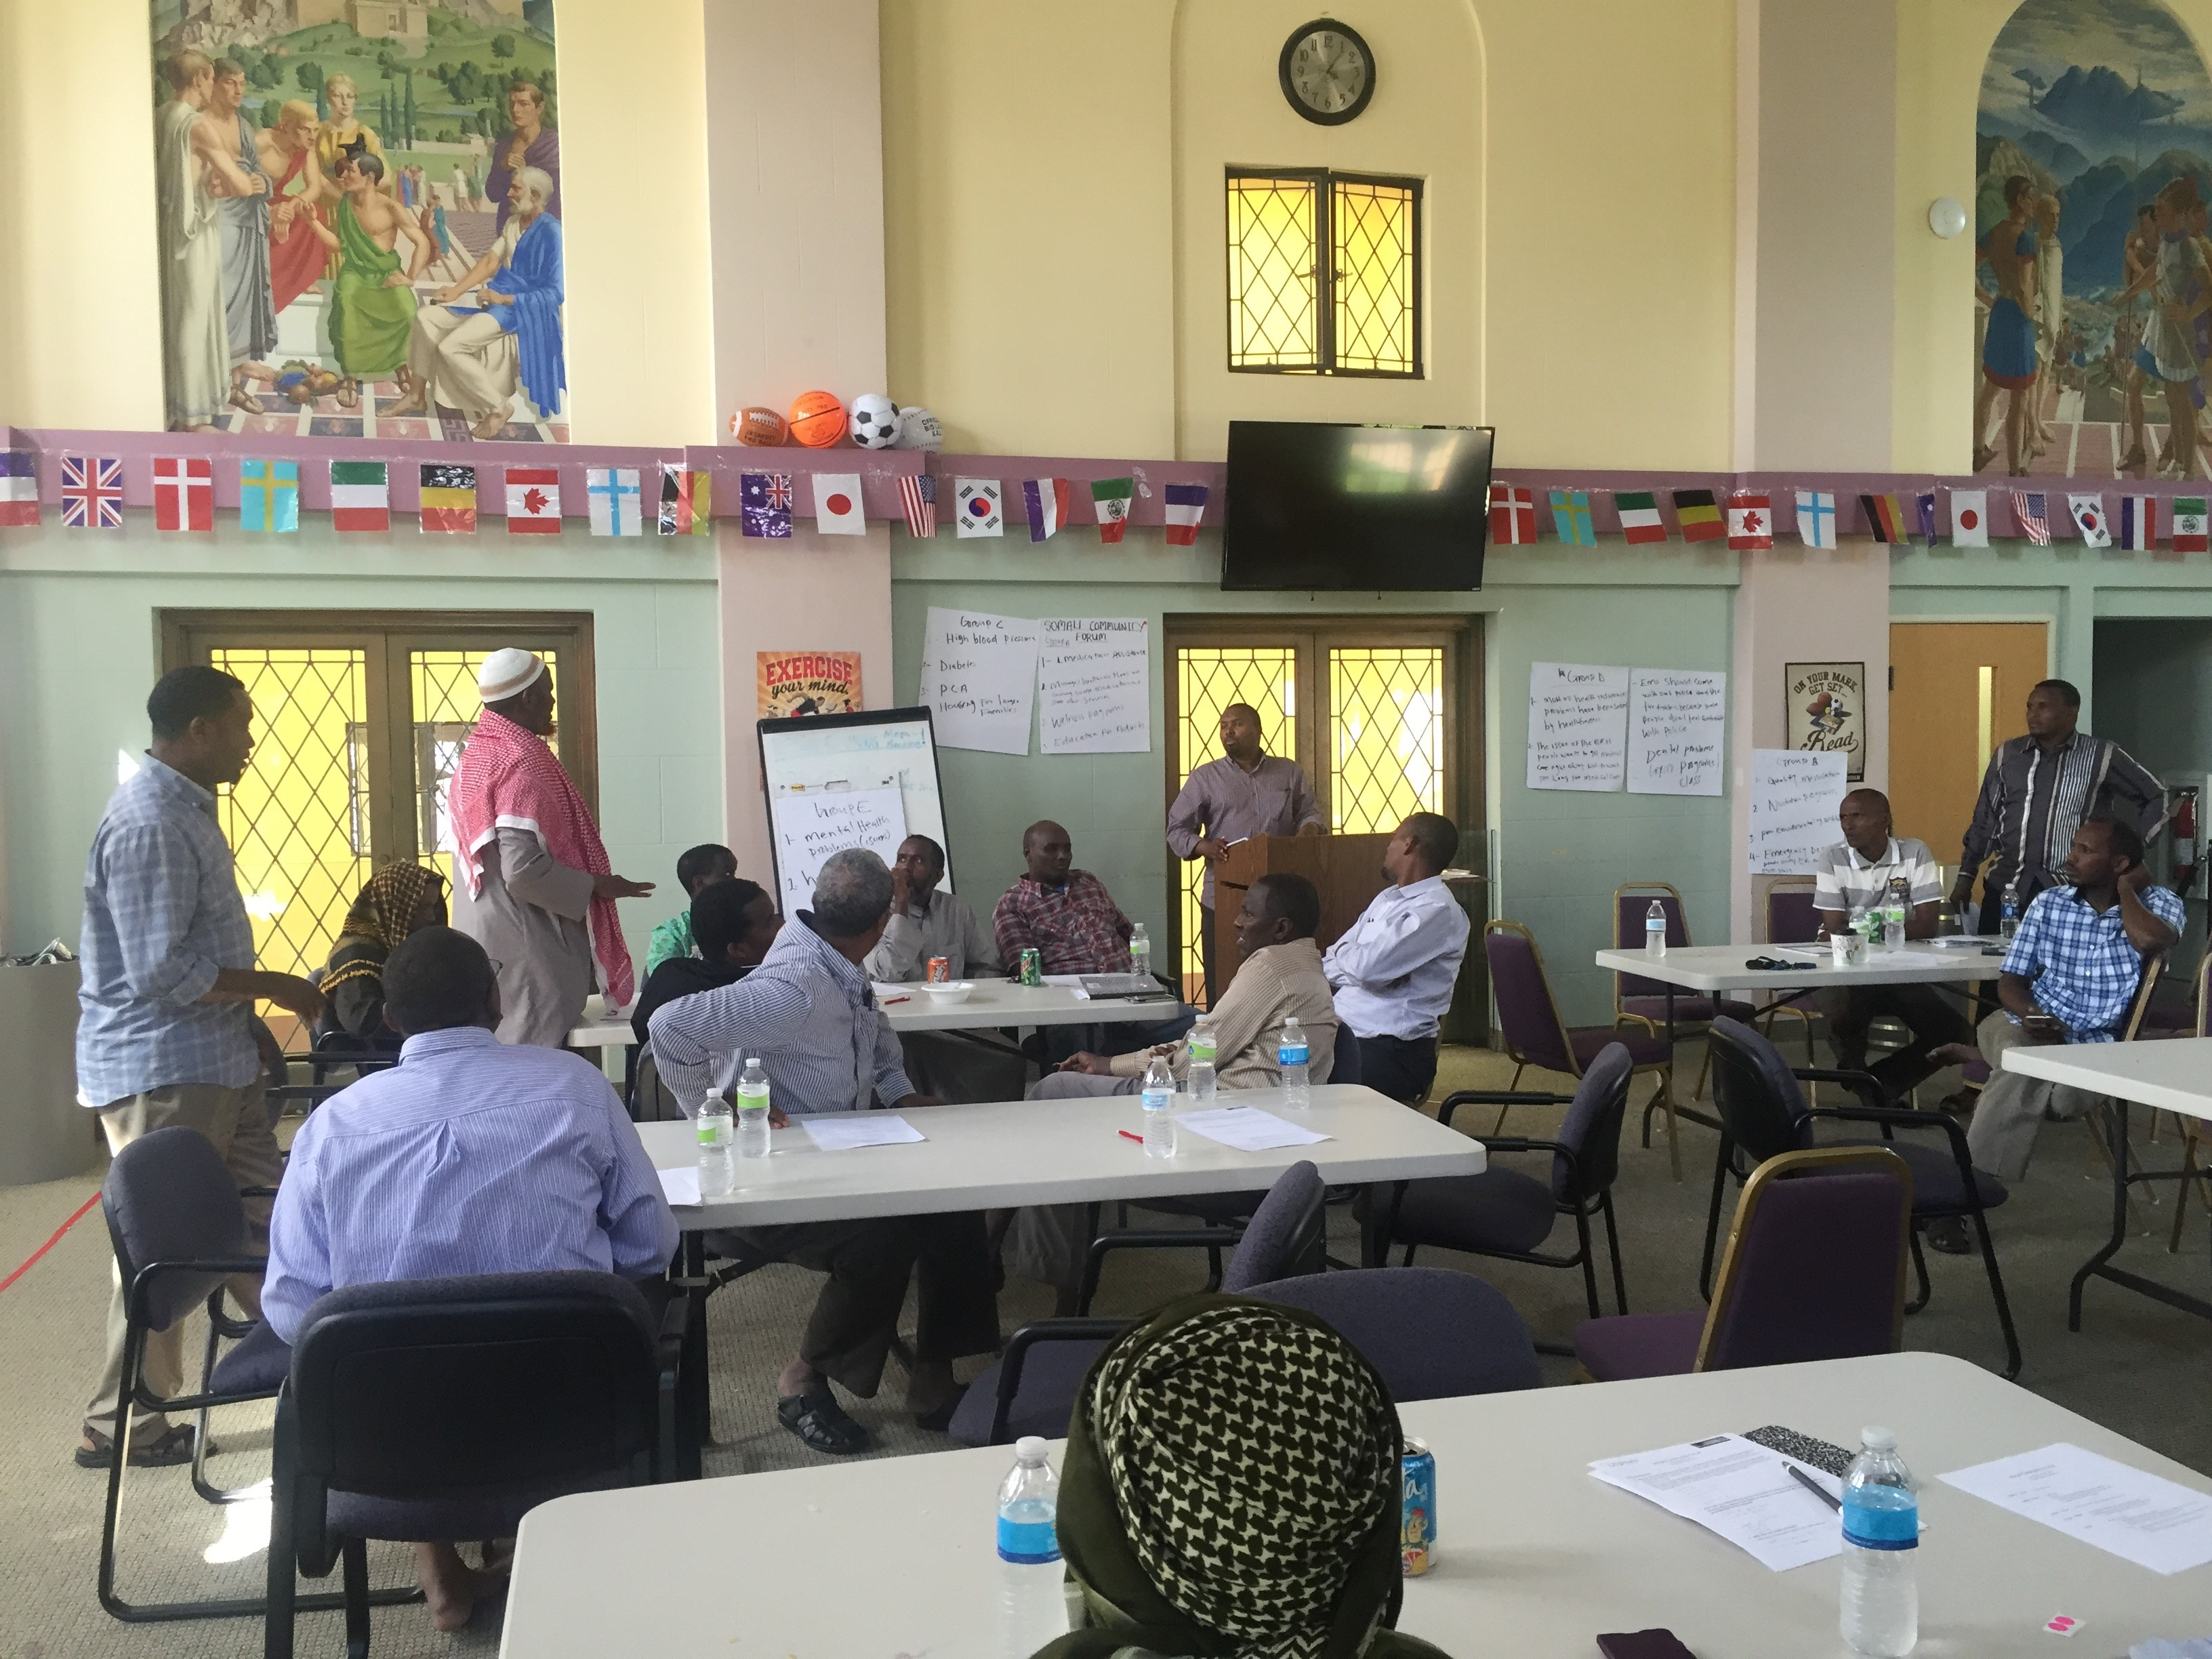 Photos from a community roundtable in July 2016.